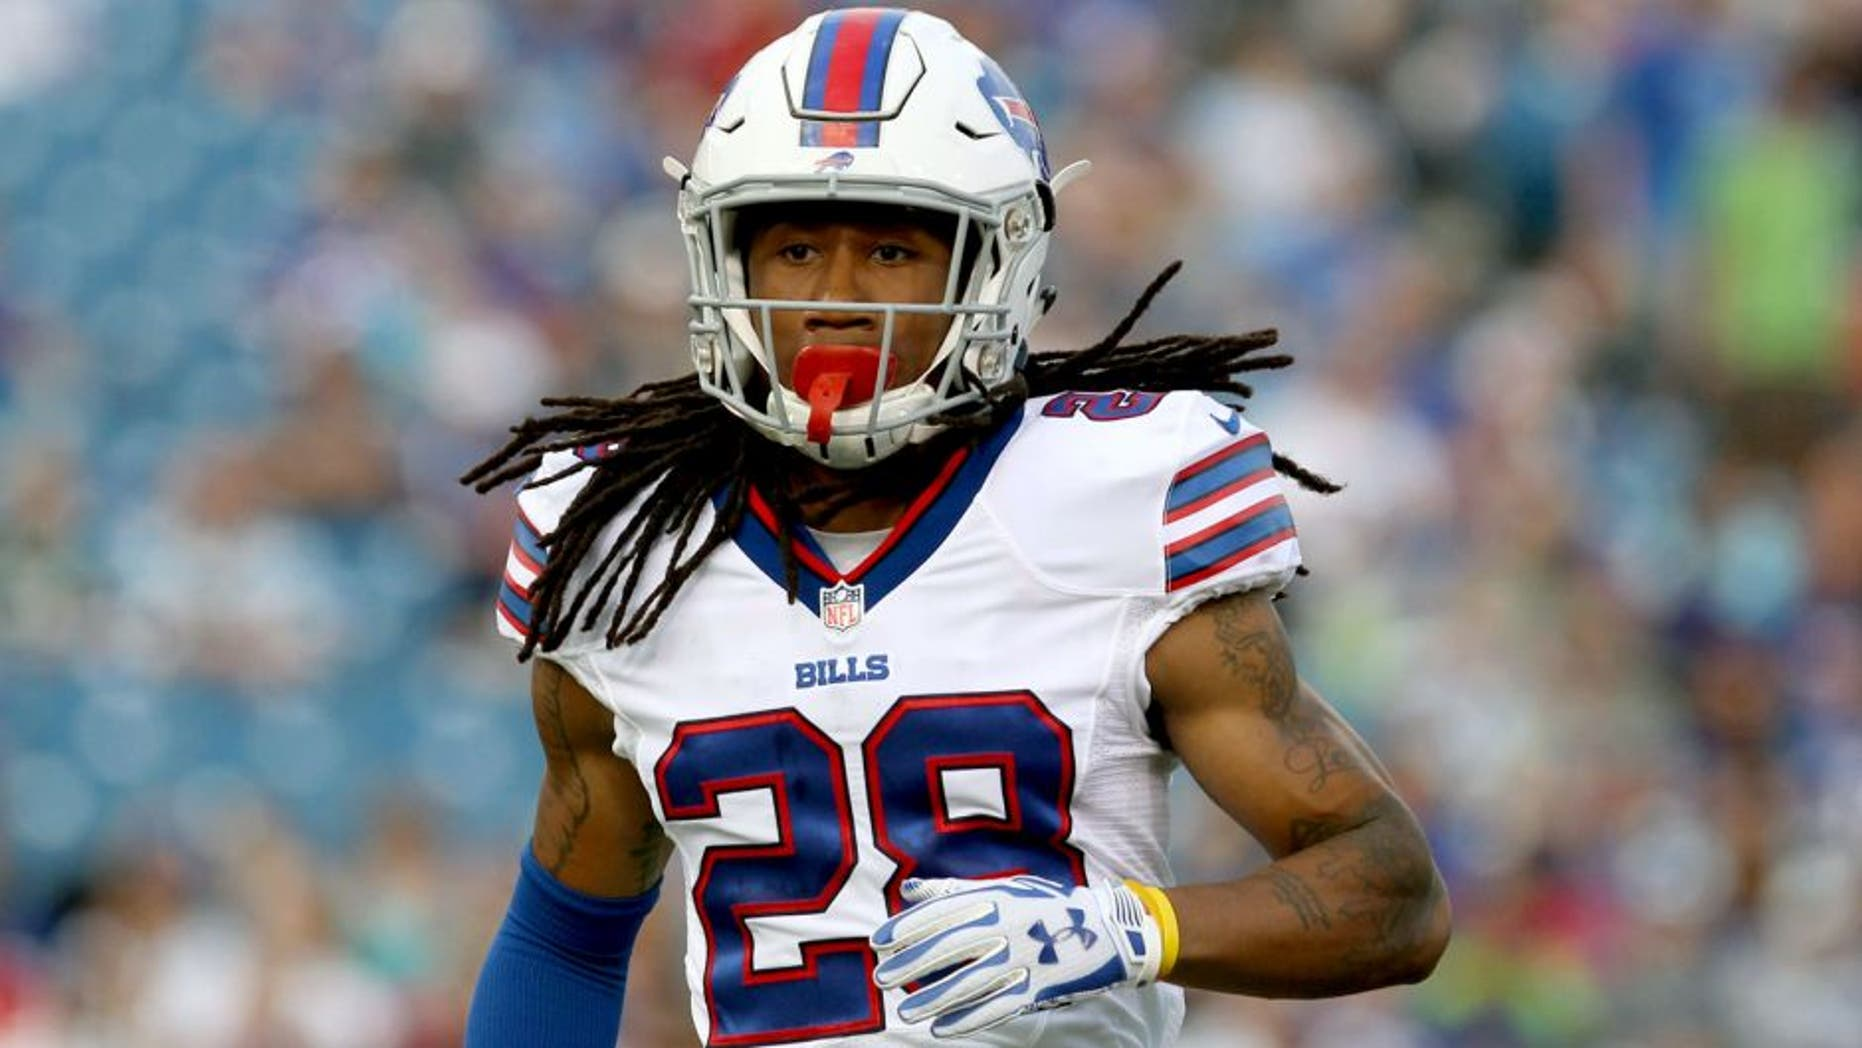 Aug 14, 2015; Orchard Park, NY, USA; Buffalo Bills cornerback Ronald Darby (28) during the first quarter against the Carolina Panthers in a preseason NFL football game at Ralph Wilson Stadium. Mandatory Credit: Timothy T. Ludwig-USA TODAY Sports